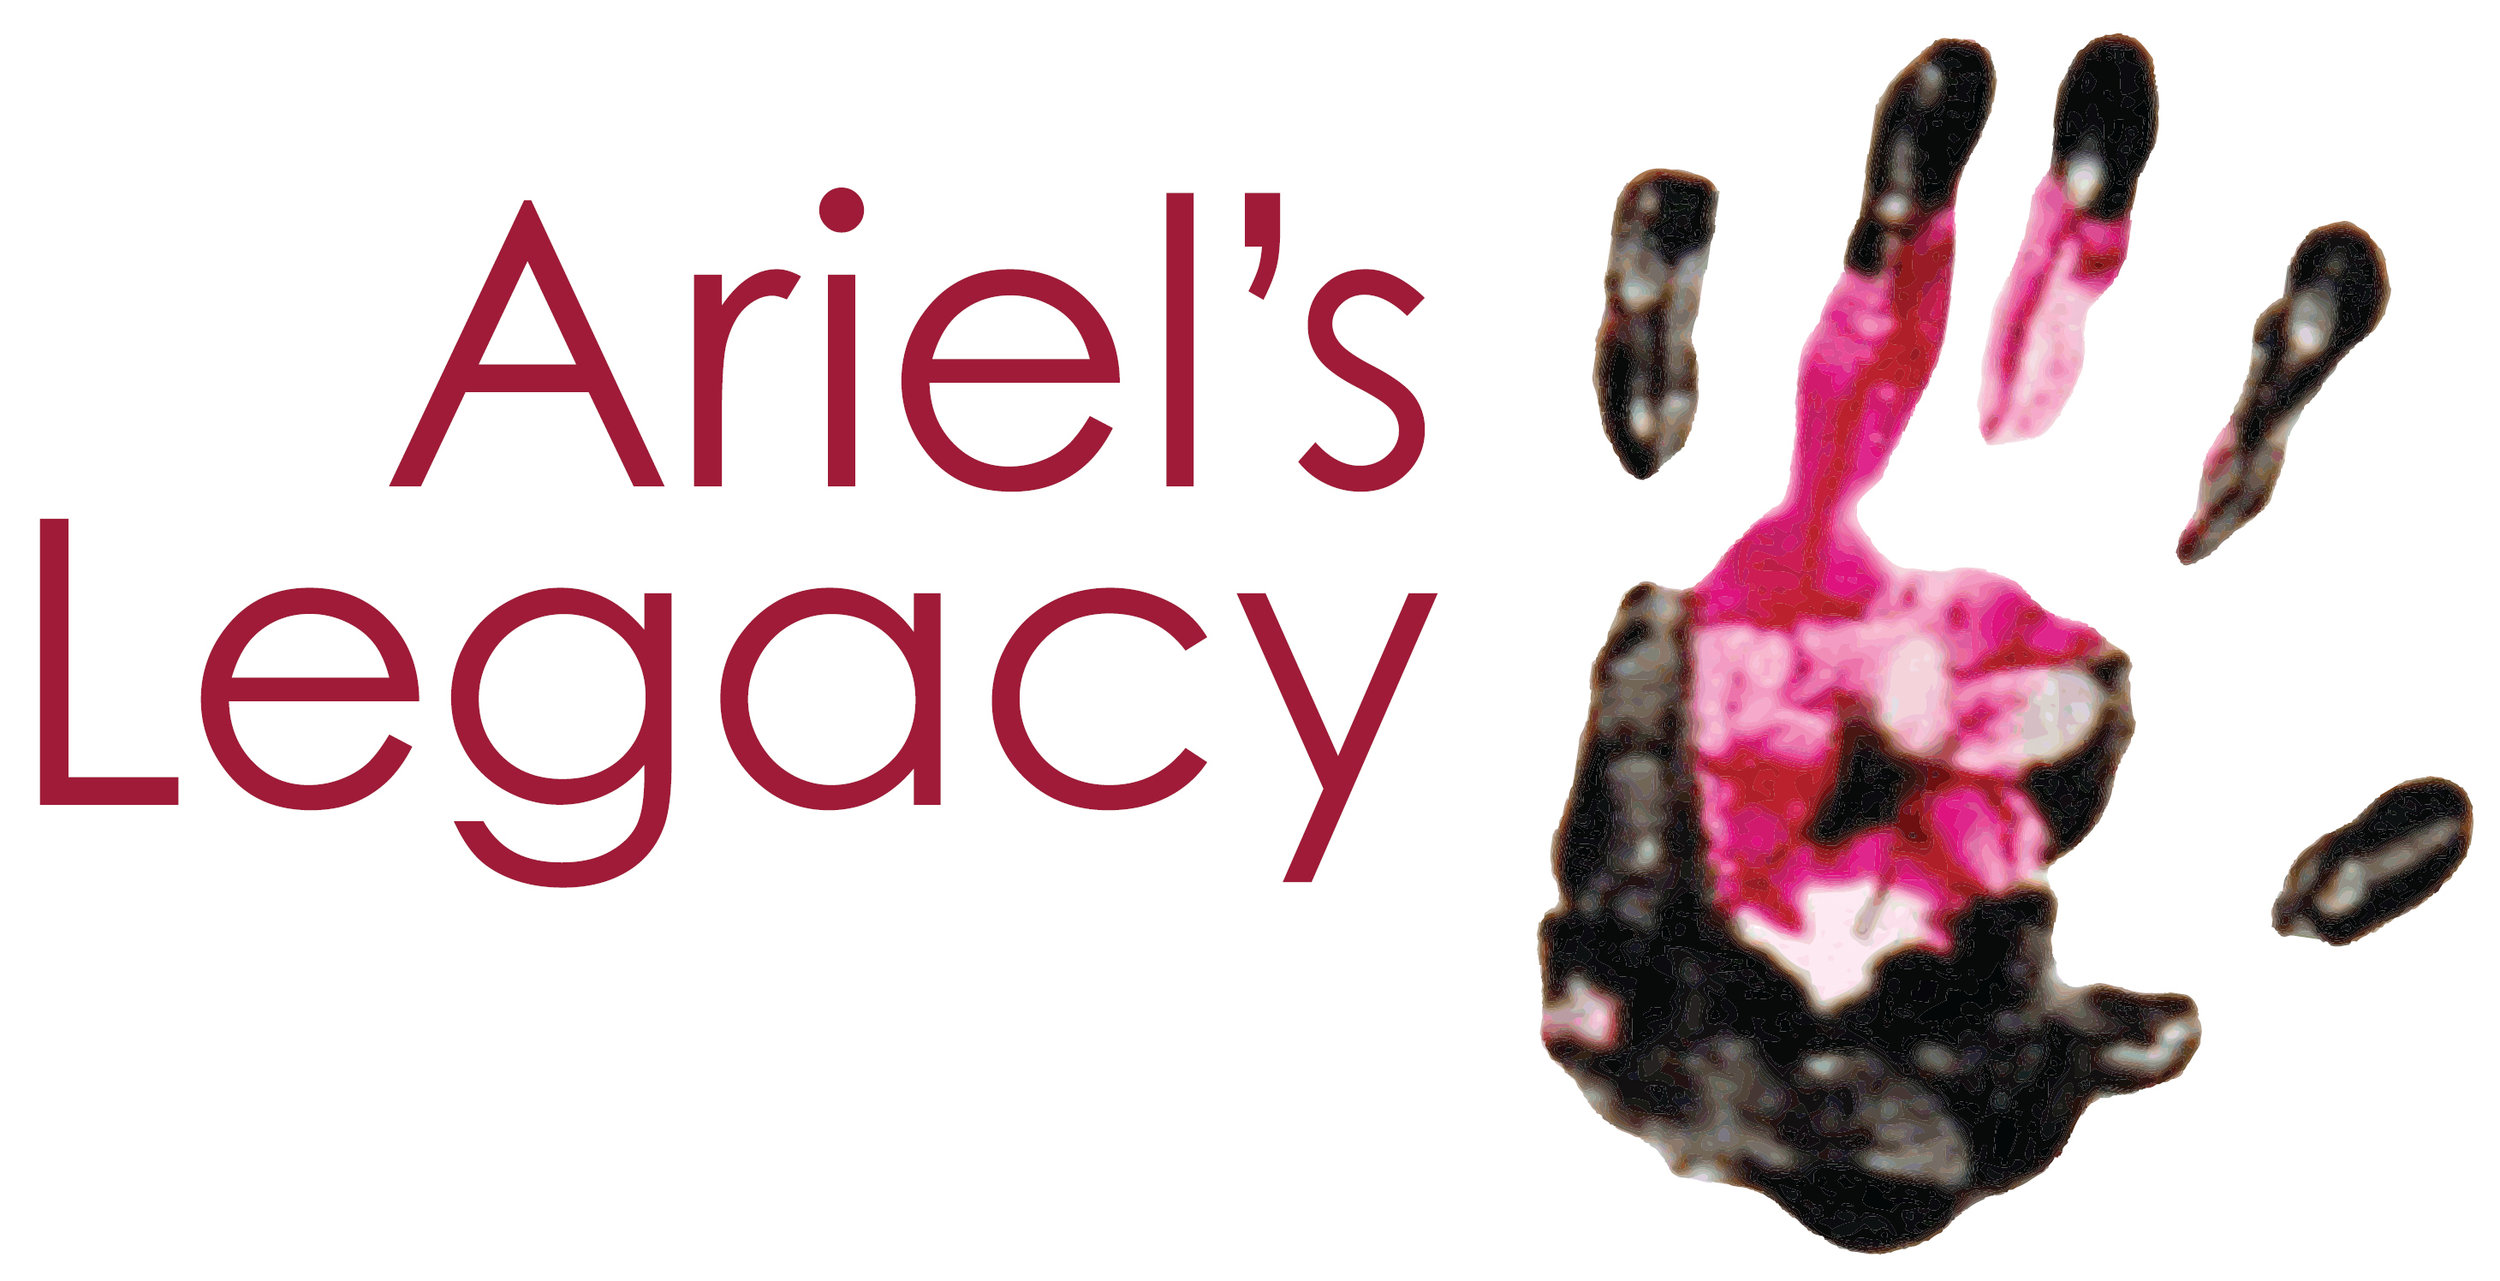 ARIELS LEGACY LOGO - Copy.jpg